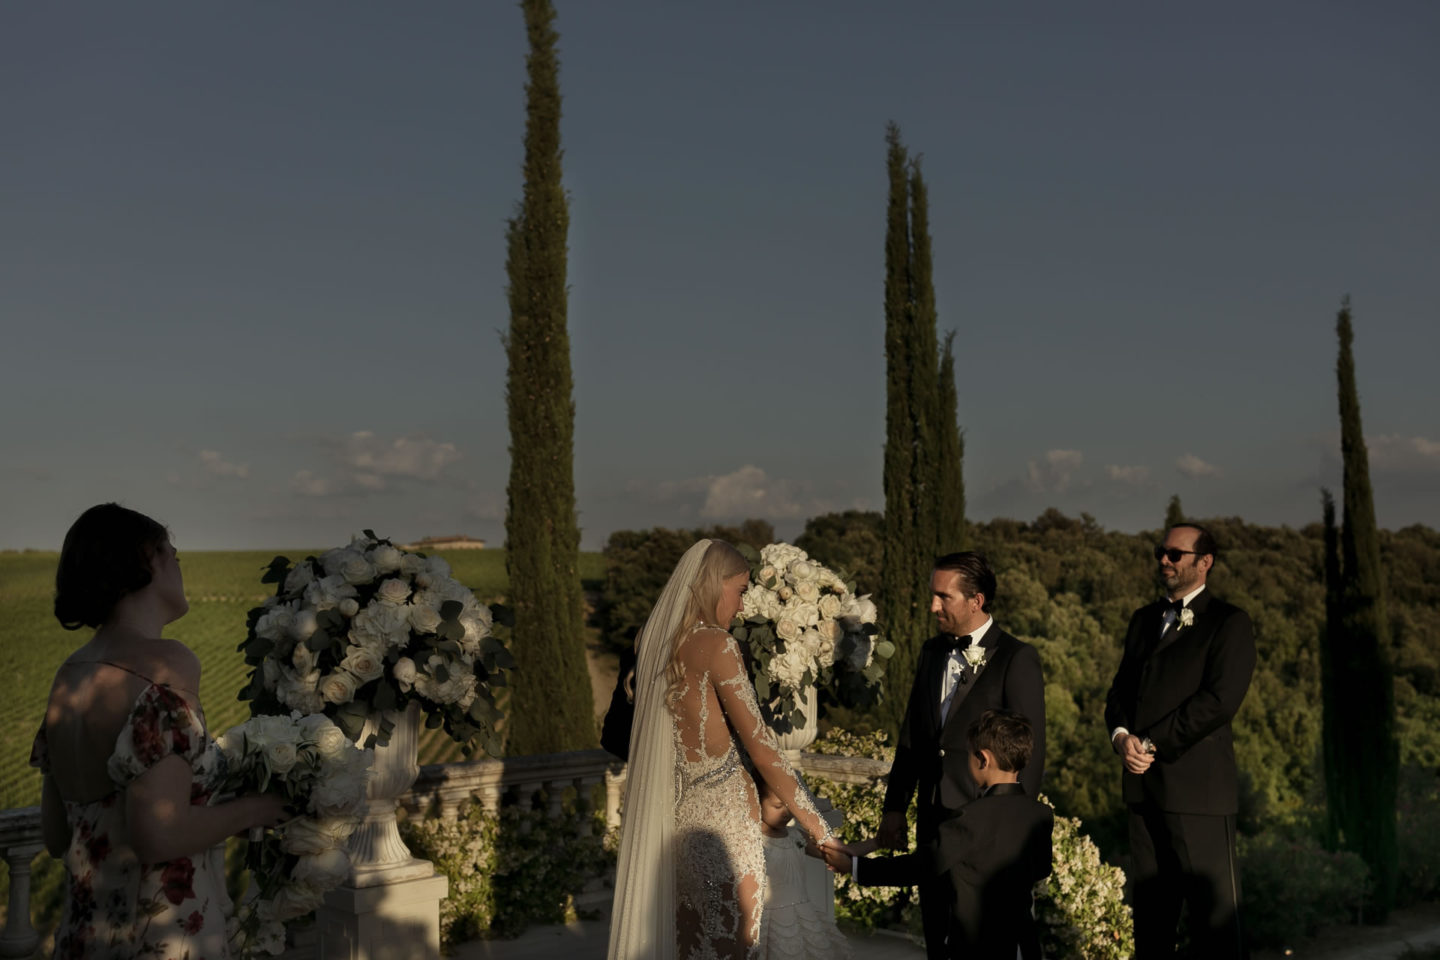 Tuscany :: Exciting wedding in the countryside of Siena :: Luxury wedding photography - 39 :: Tuscany